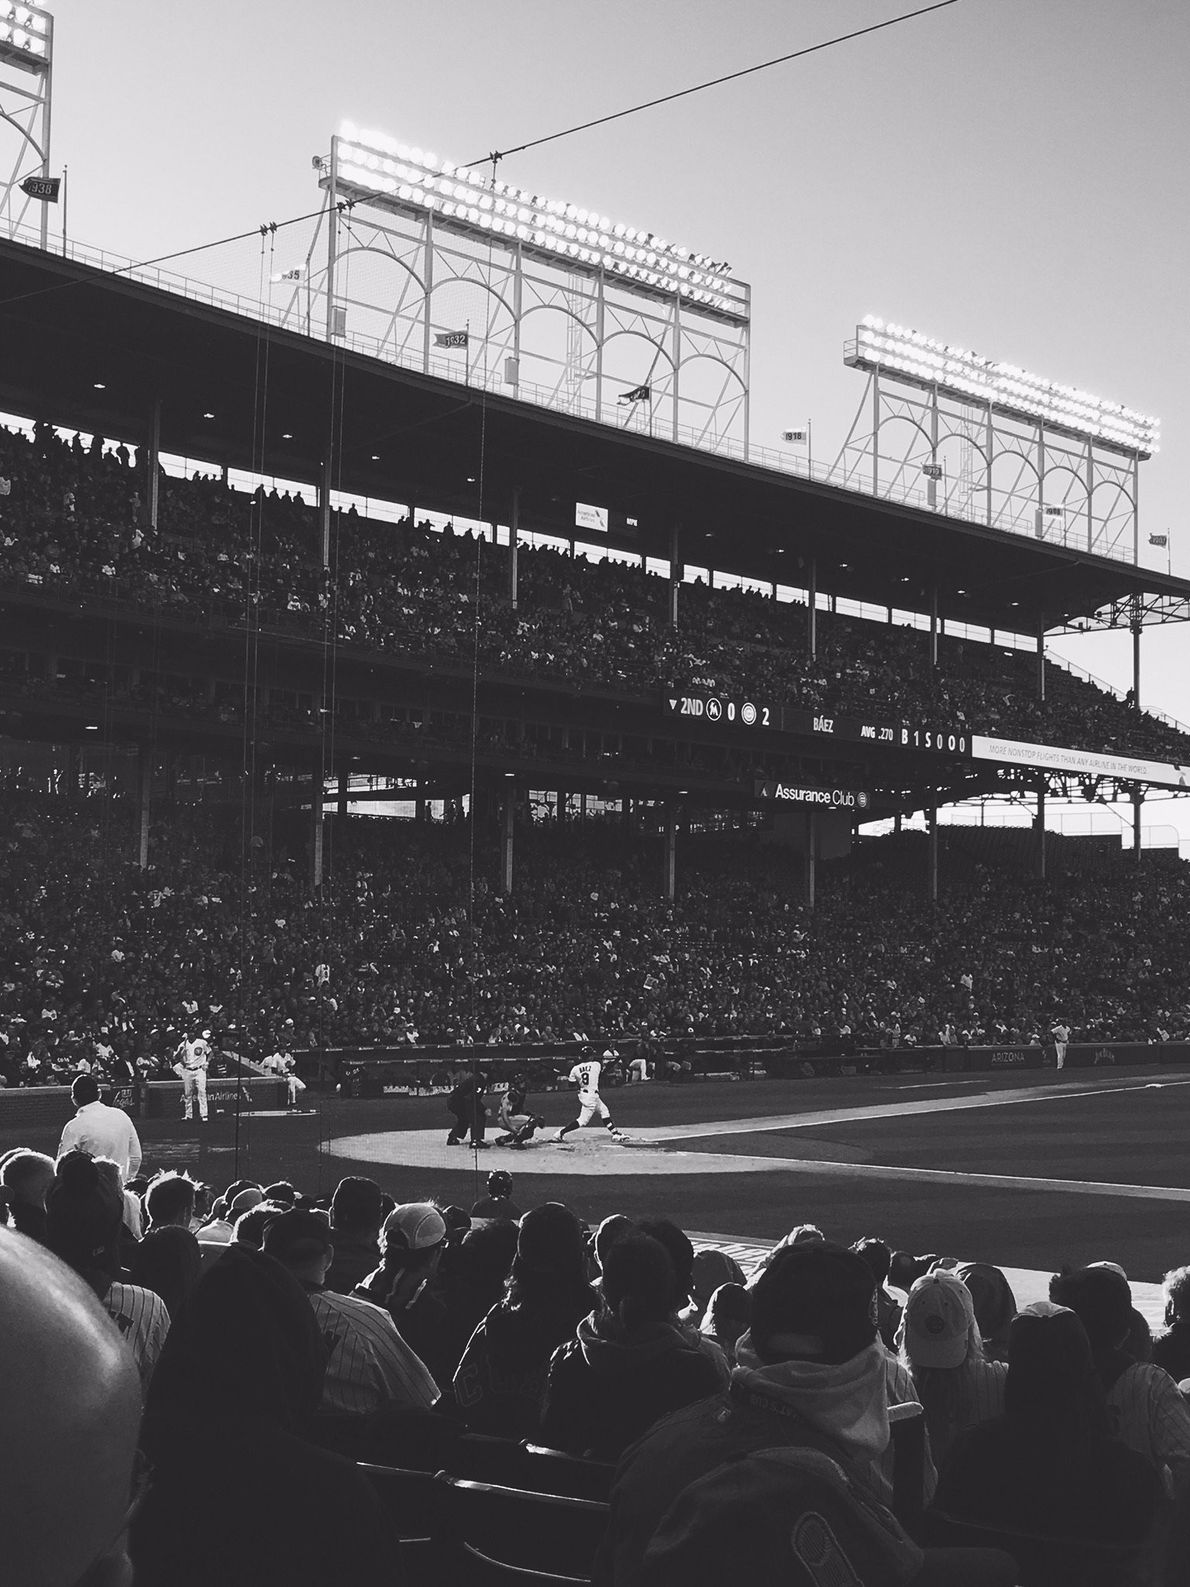 """""""A beautiful day at Wrigley,"""" writes Your Shot photographer Victoria M. """"There's nothing better than seeing ..."""